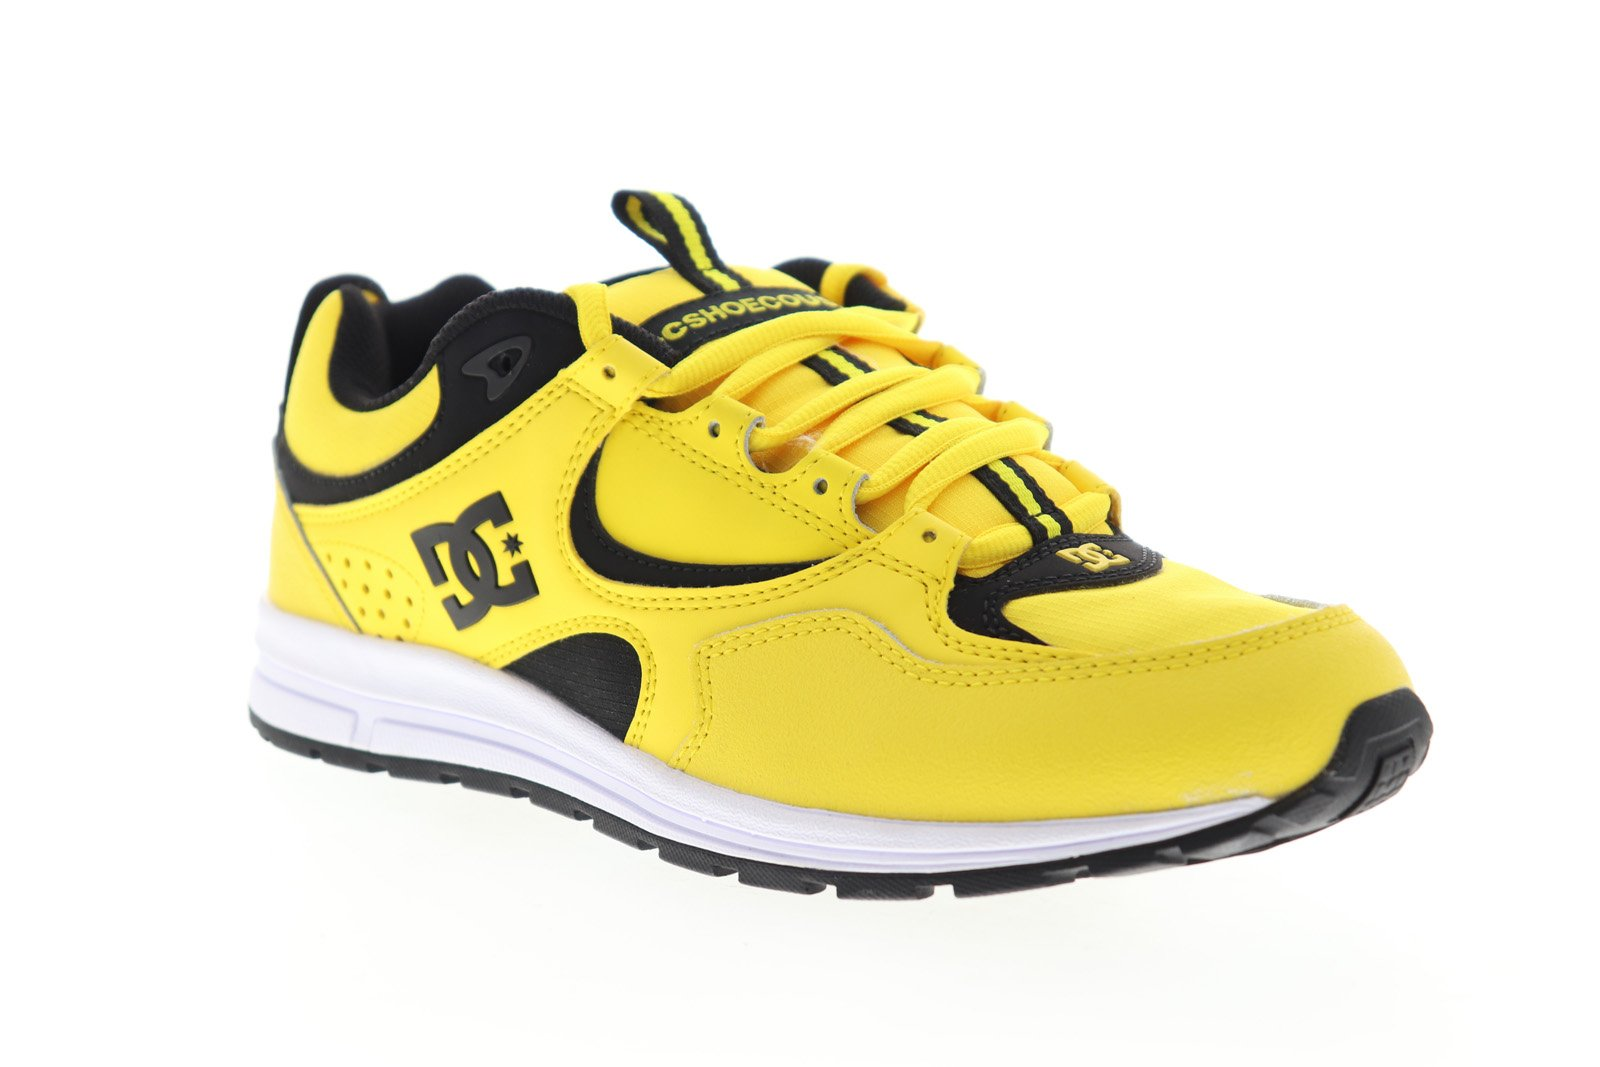 DC Kalis Lite S ADYS100388 Mens Yellow Synthetic Lace Up Athletic Skate Shoes